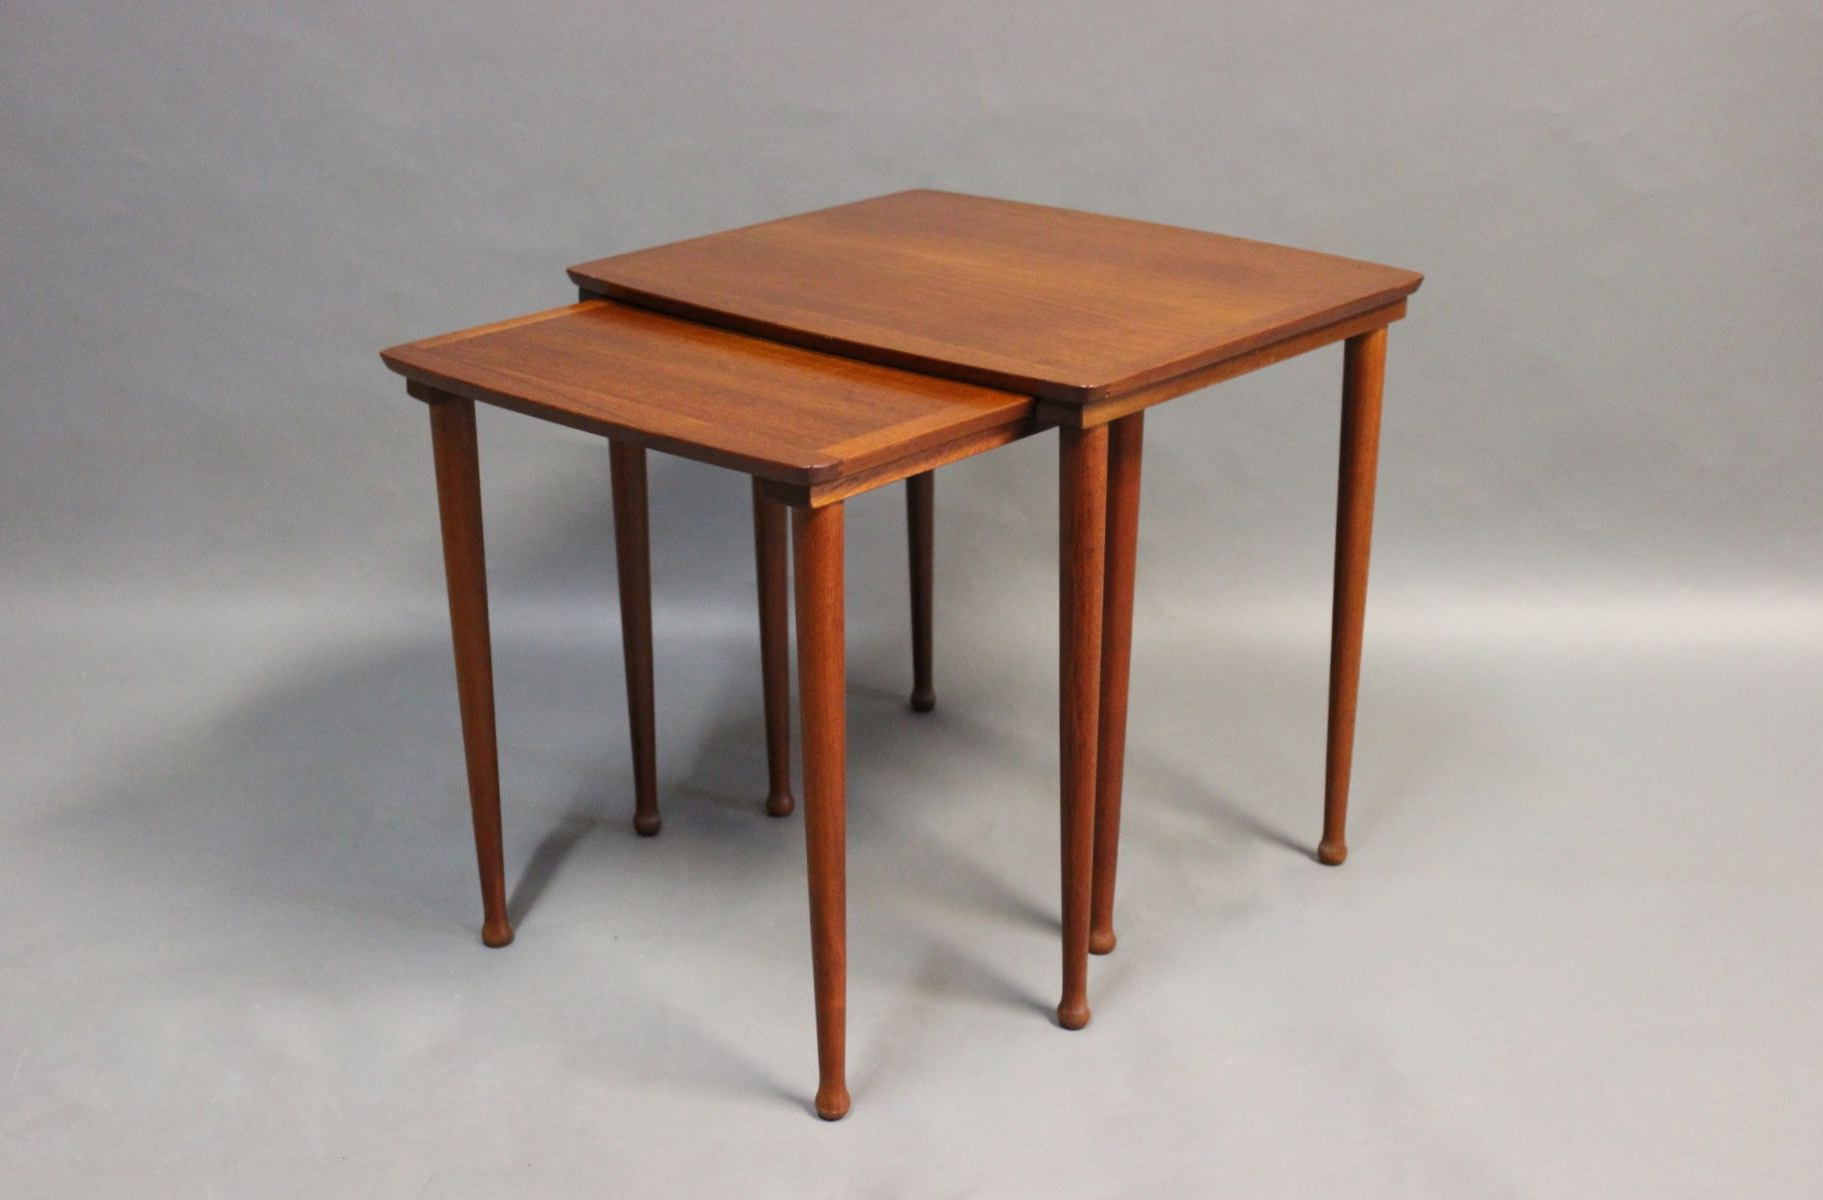 Teak Nesting Tables From Møbelintarsia, 1960S For Sale At Pamono Regarding Intarsia Console Tables (Gallery 19 of 20)